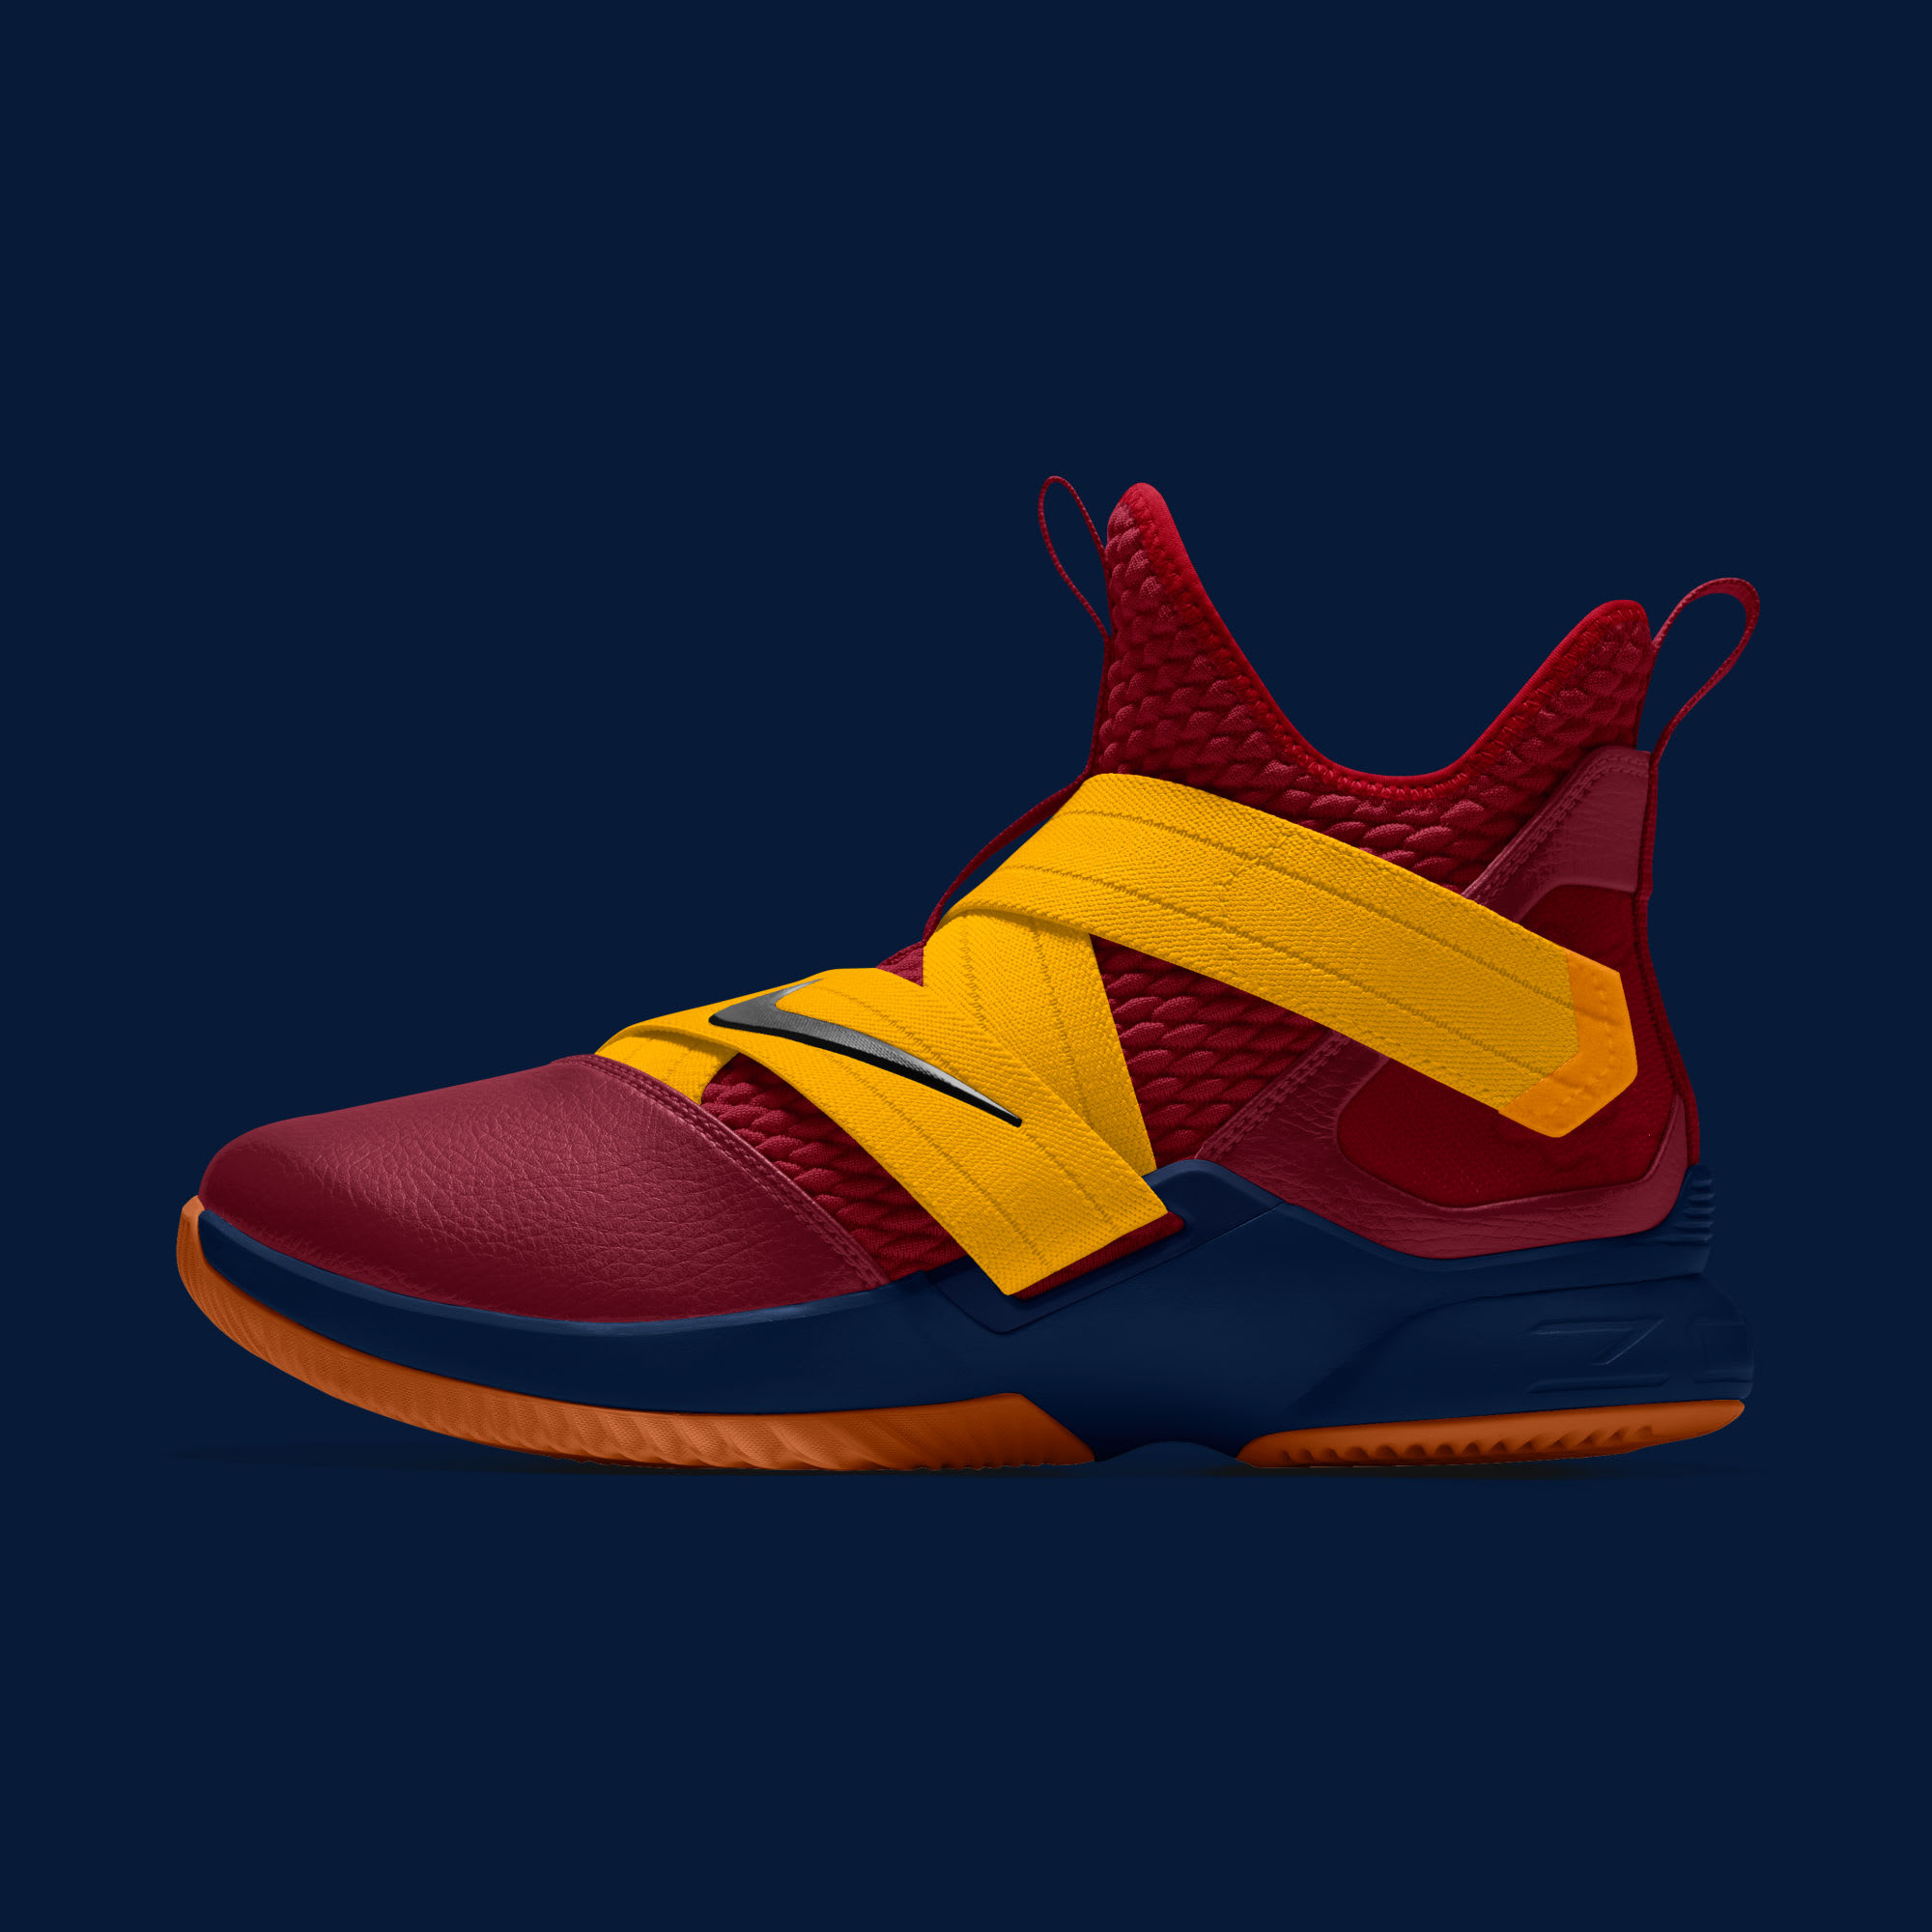 sneakers for cheap ed63f 06f6c NIKEiD LeBron Soldier 12 XII Release Date - Premier Kicks